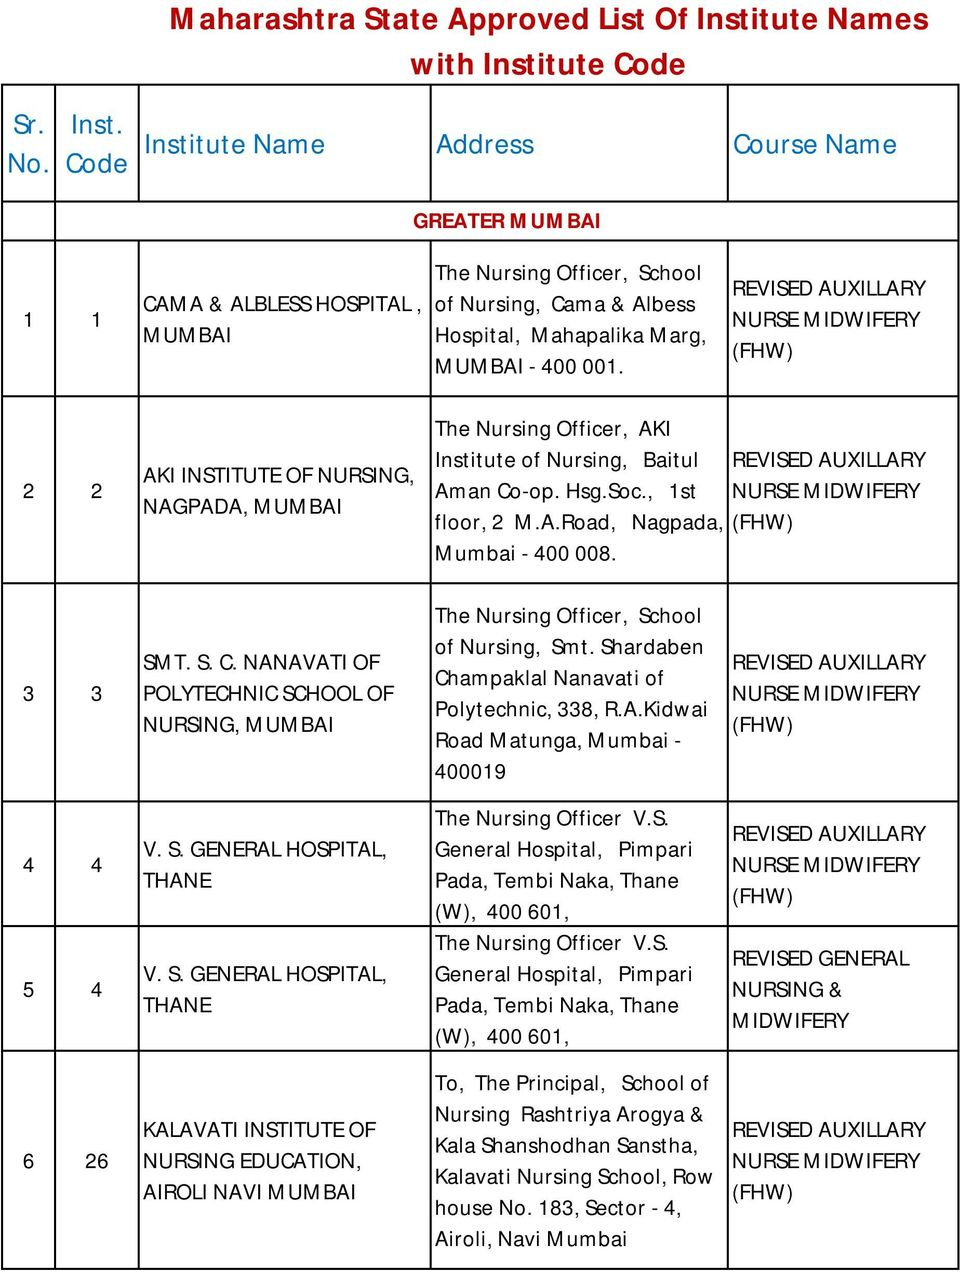 Maharashtra State Approved List Of Institute Names with